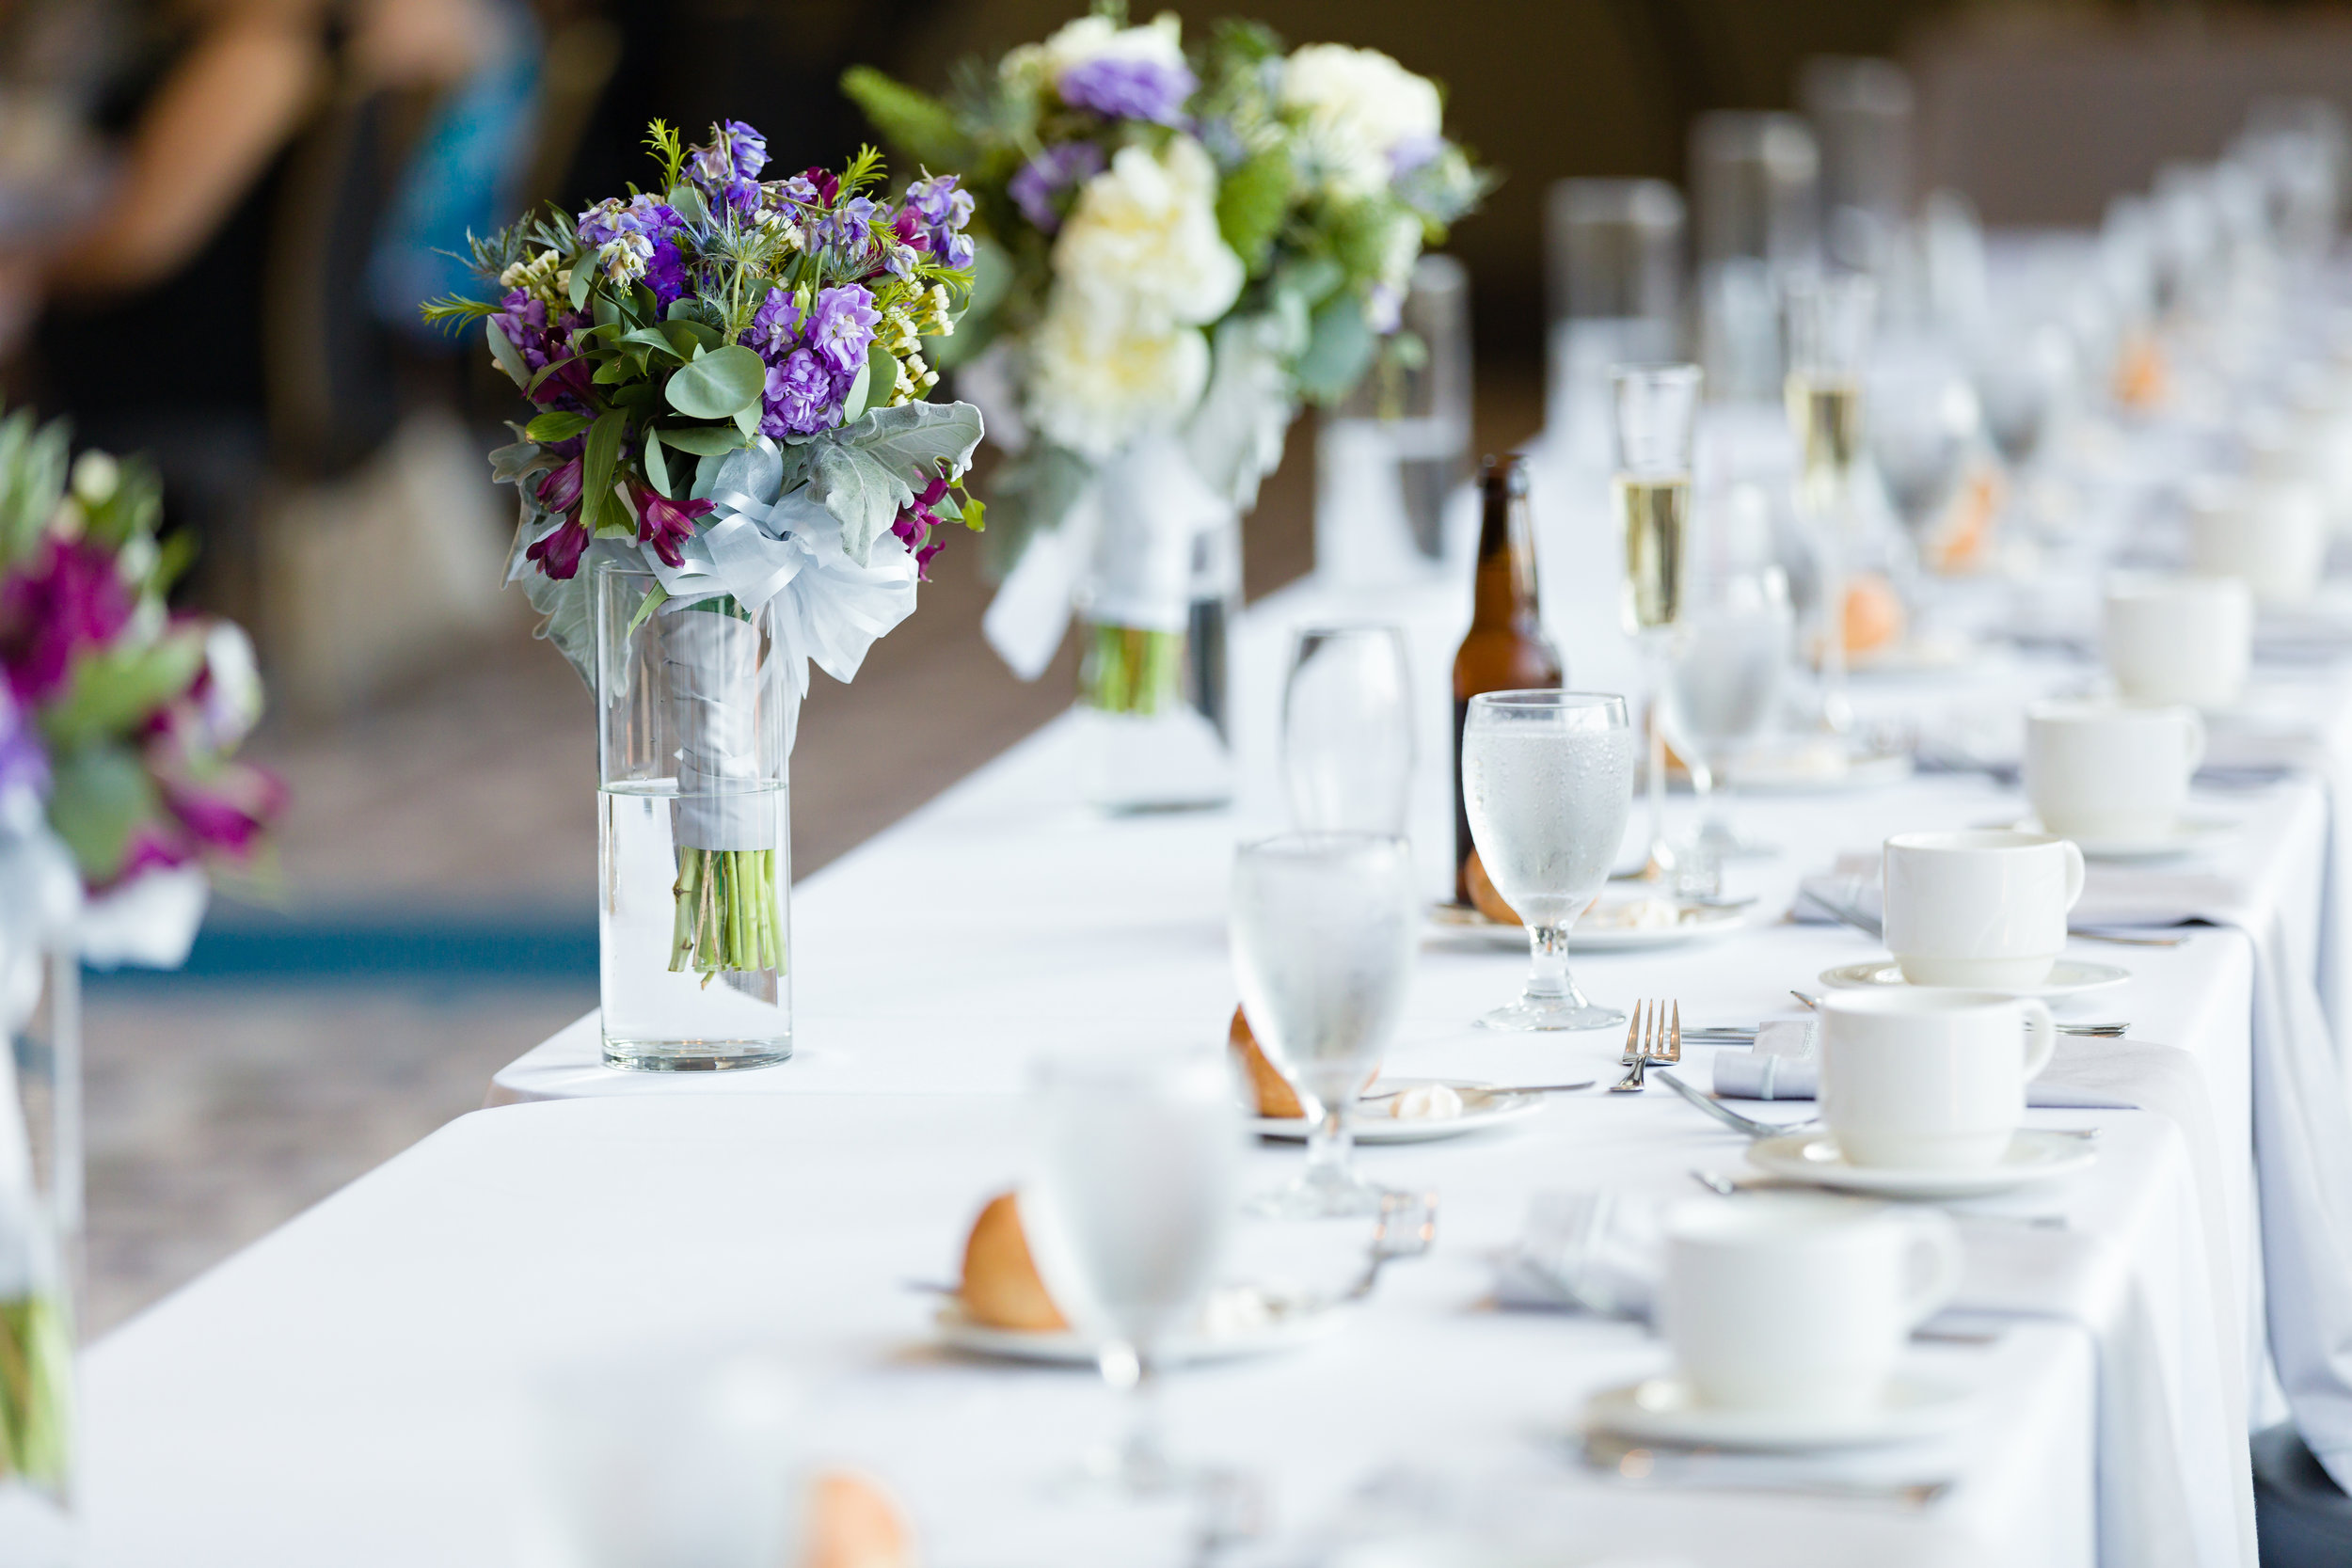 All White Wedding Table Setting - Pittsburgh Wedding Venue - Duquesne University Wedding